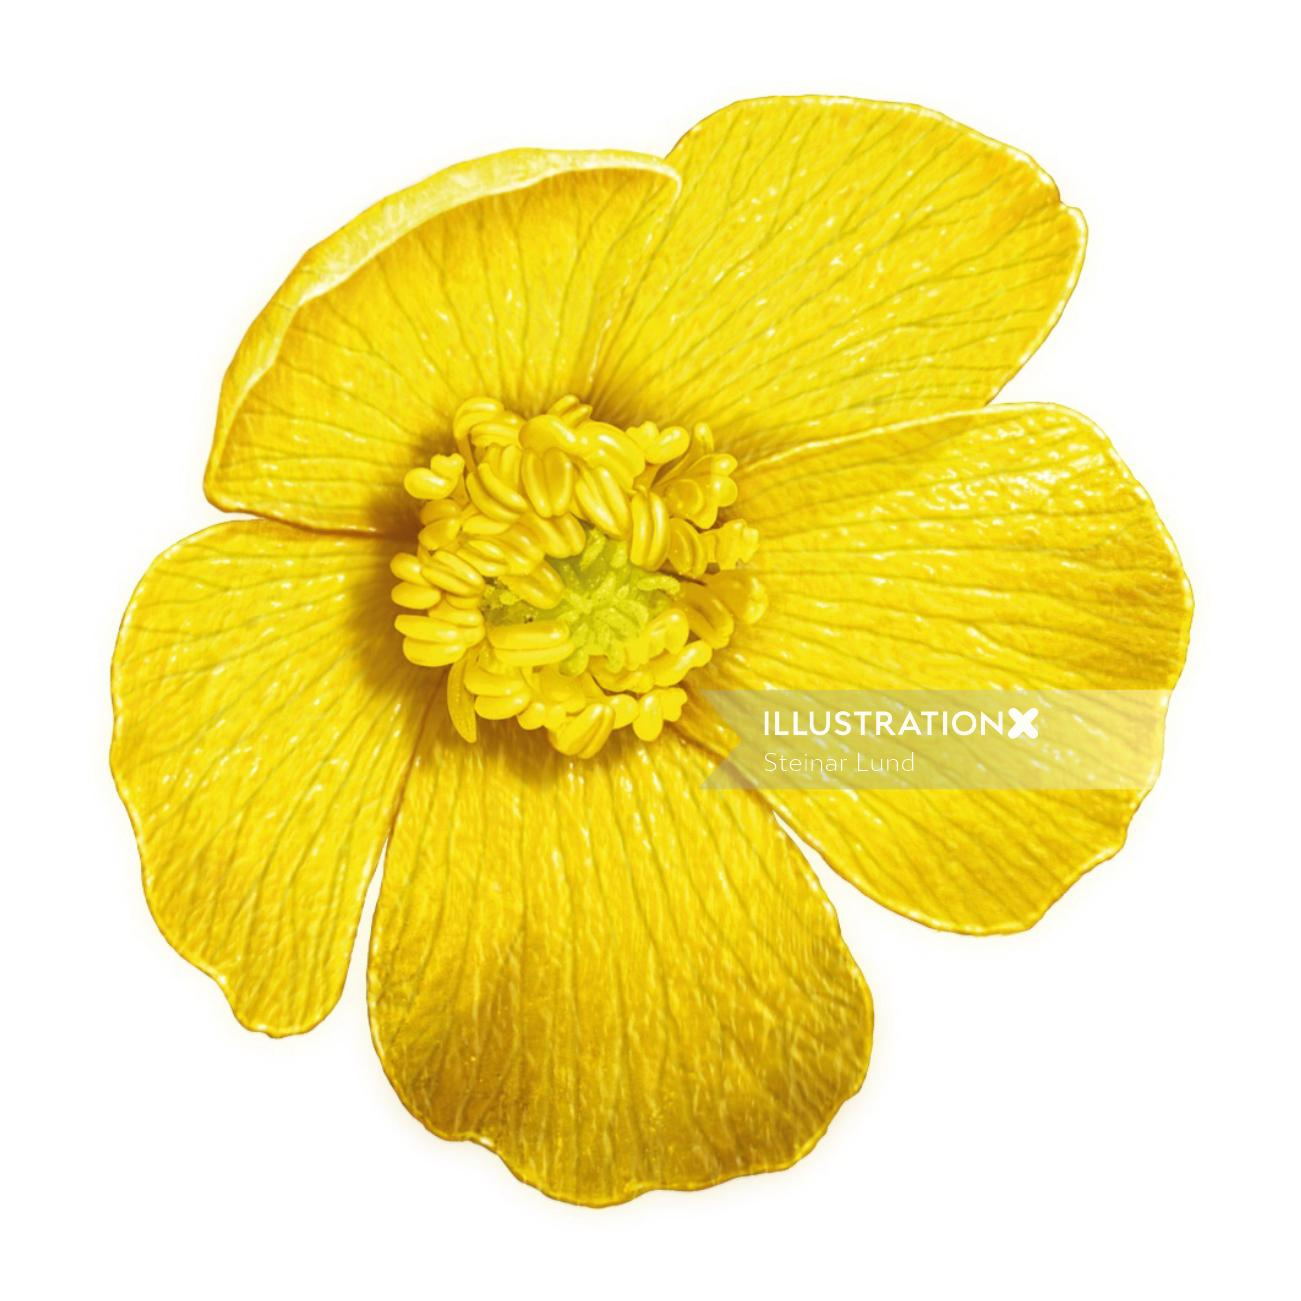 Yellow Flower illustration